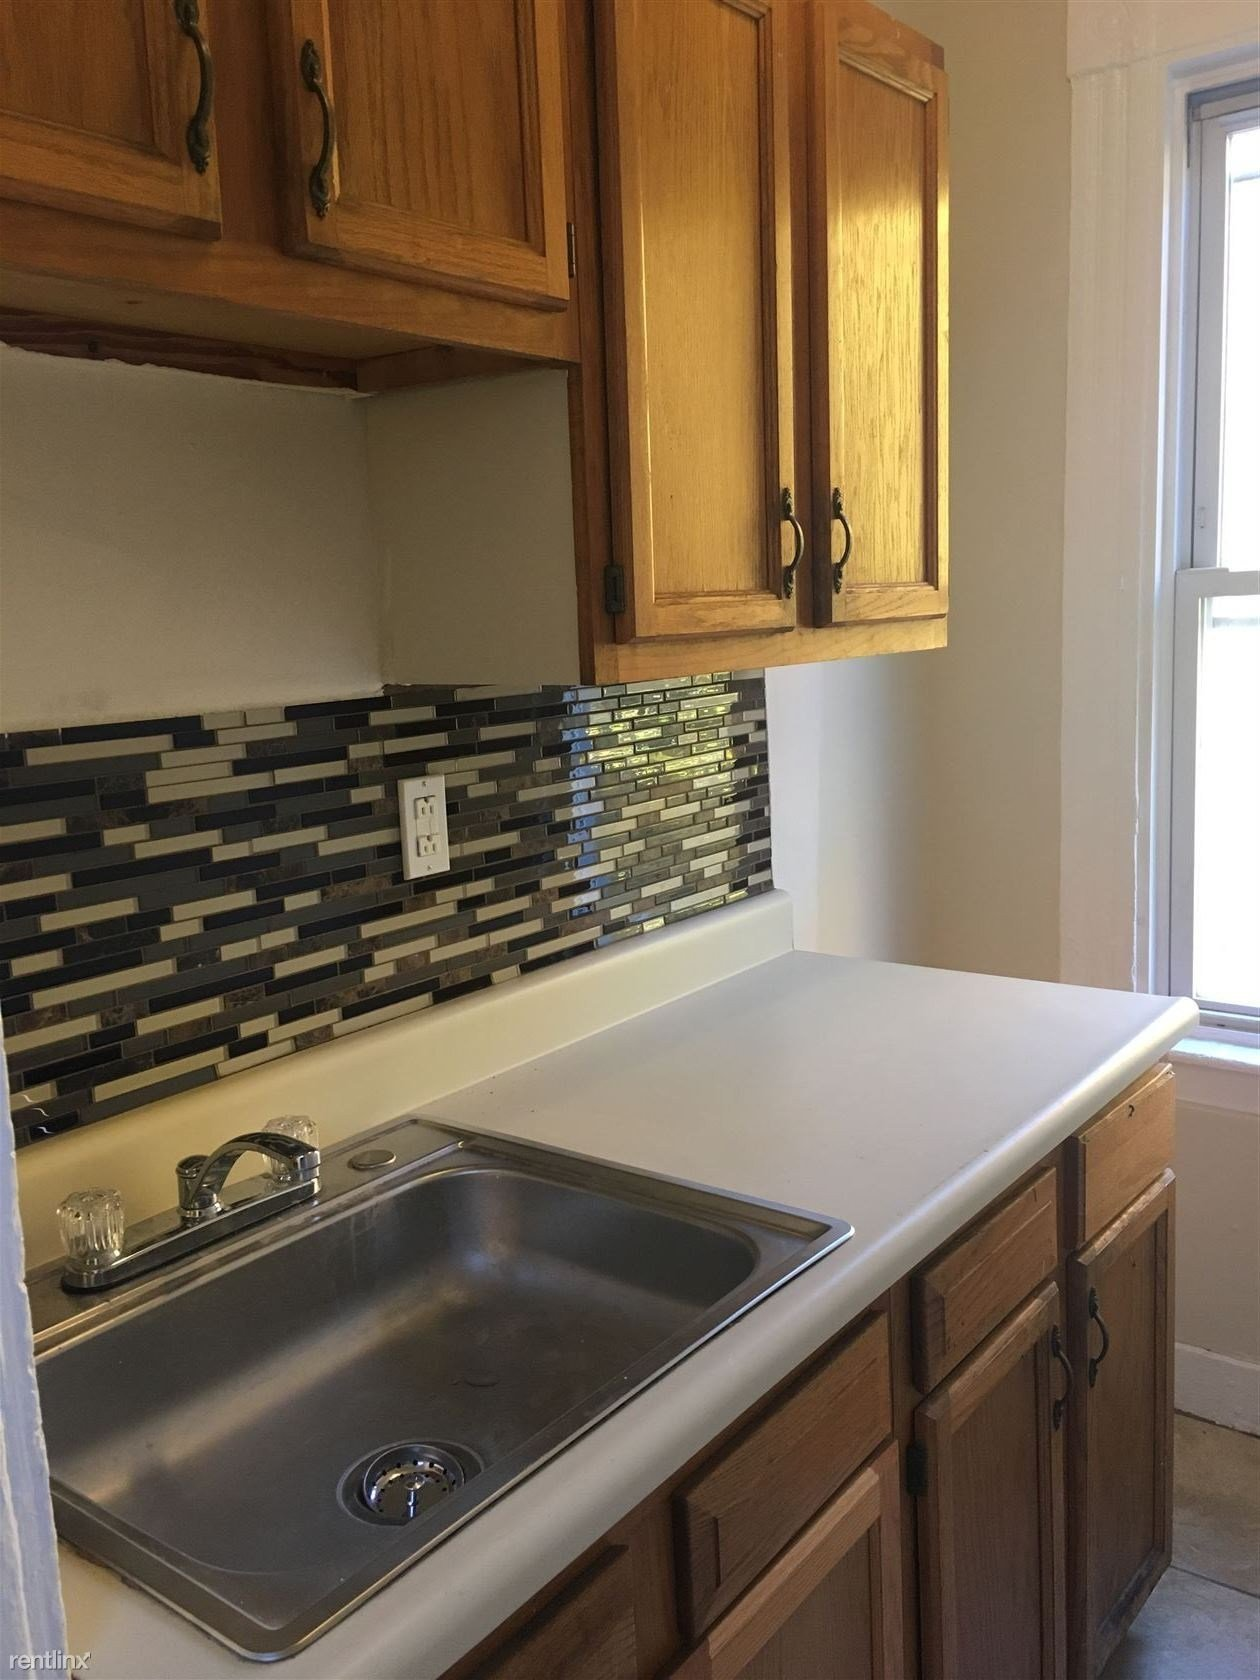 Best 149 Clay St 3 New Haven Ct 06513 3 Bedroom Apartment With Pictures